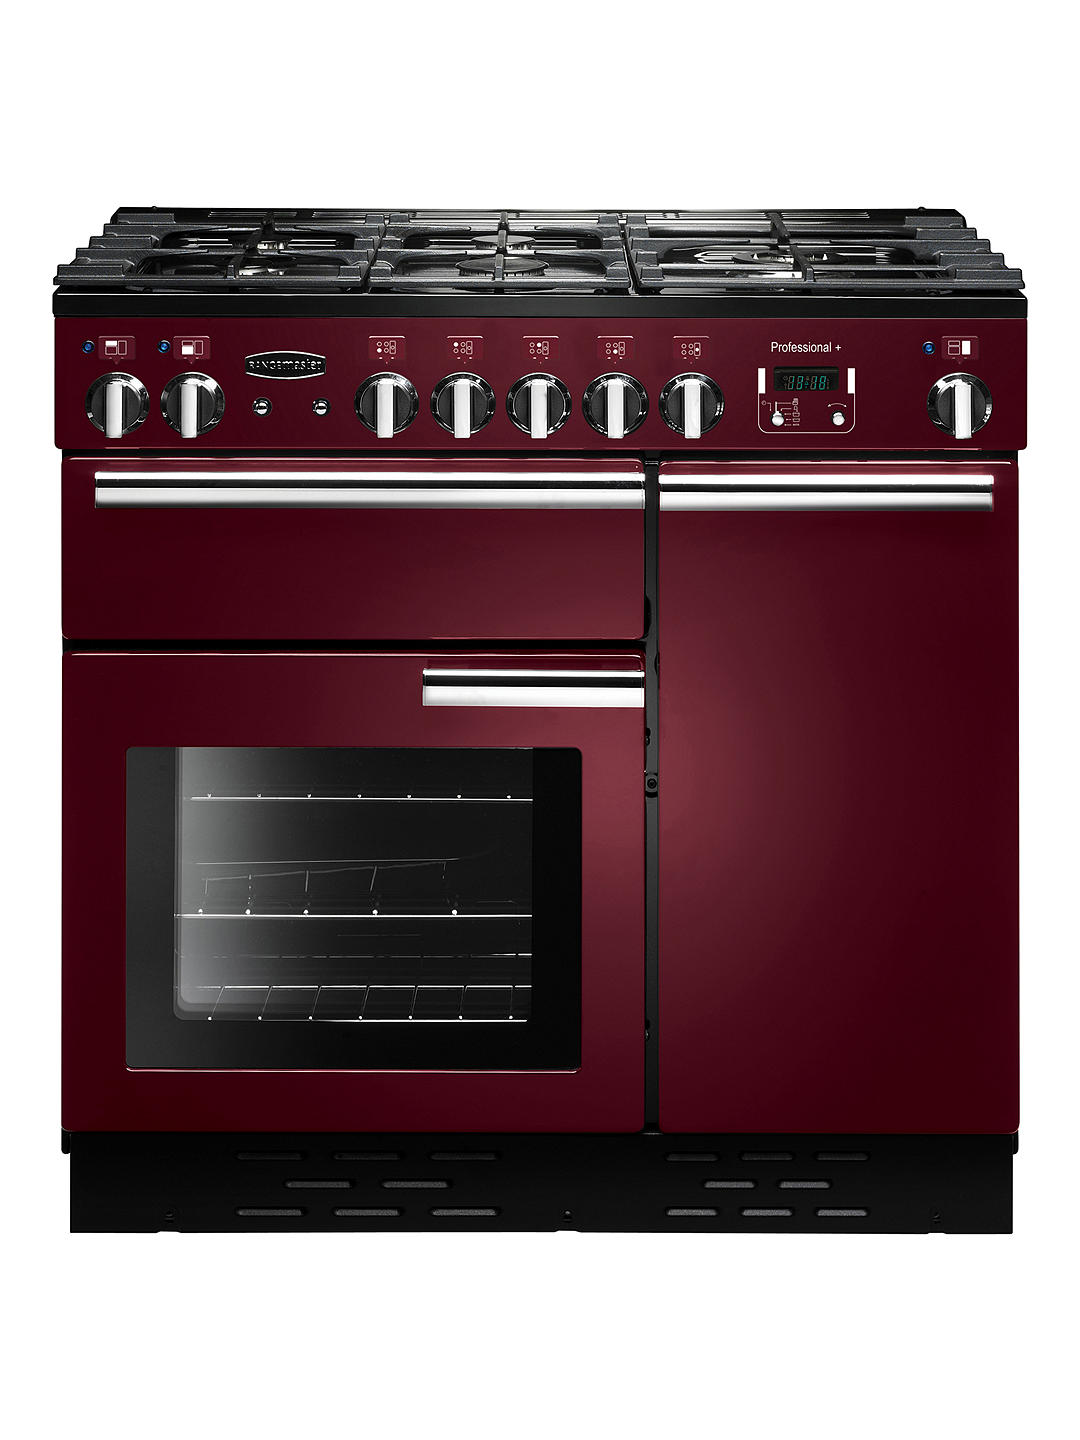 Buy Rangemaster Professional + 90 Dual Fuel Range Cooker, Cranberry/Chrome Trim Online at johnlewis.com